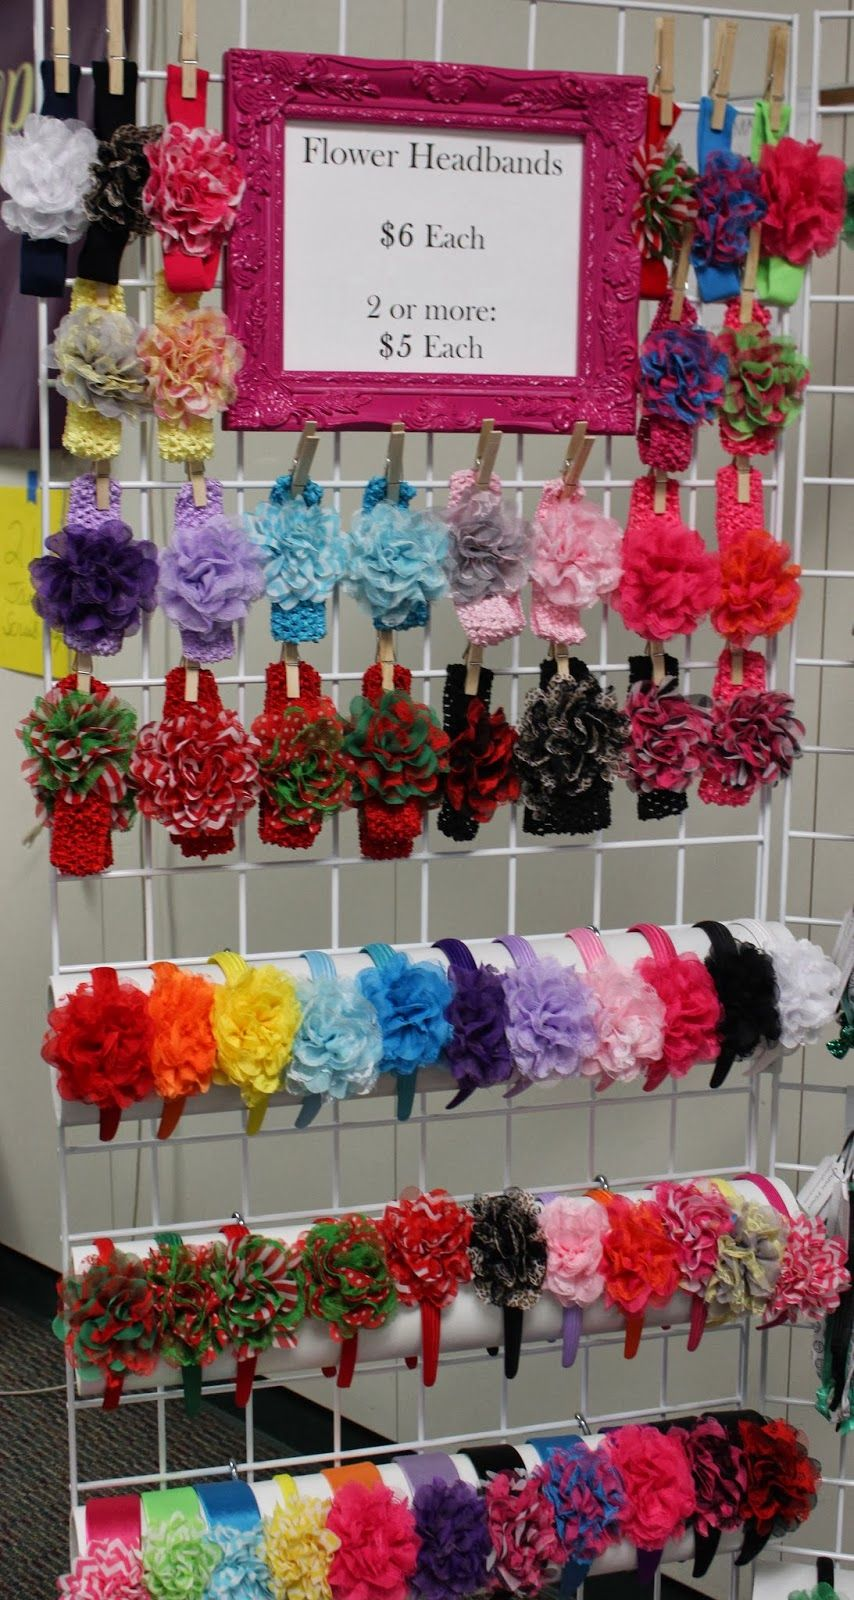 Hair Ties In A Jar Single Next Time I Plan To Add More Pegs And Colors Rainbo Craft Booth Displays Fairs Fair